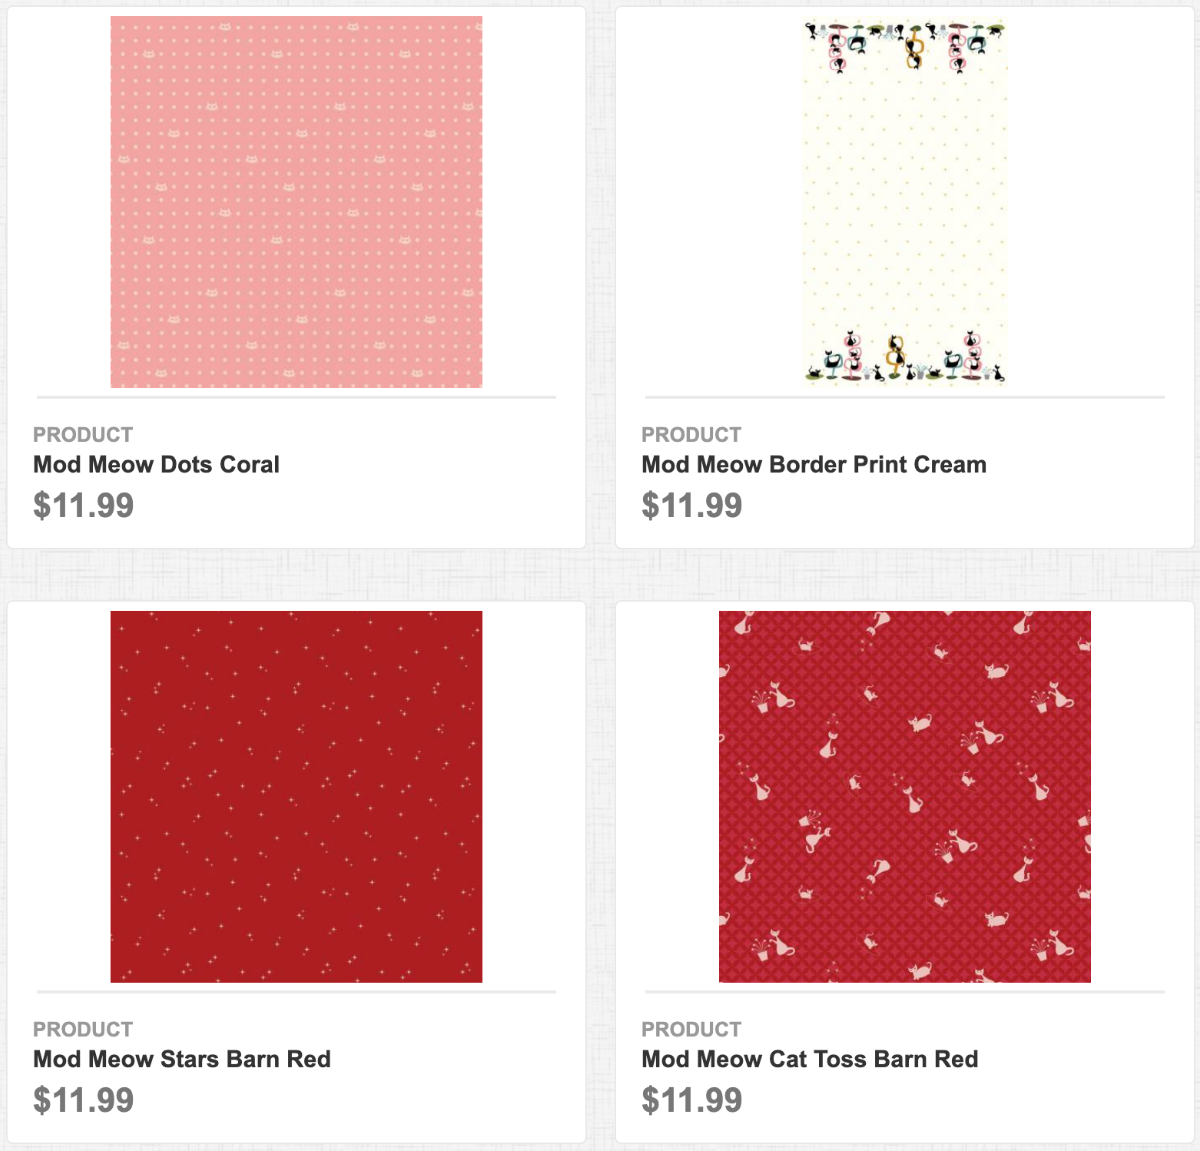 Mod Meow Dots Coral, Border Print Cream, Stars Barn Red, Cat Toss Barn Red